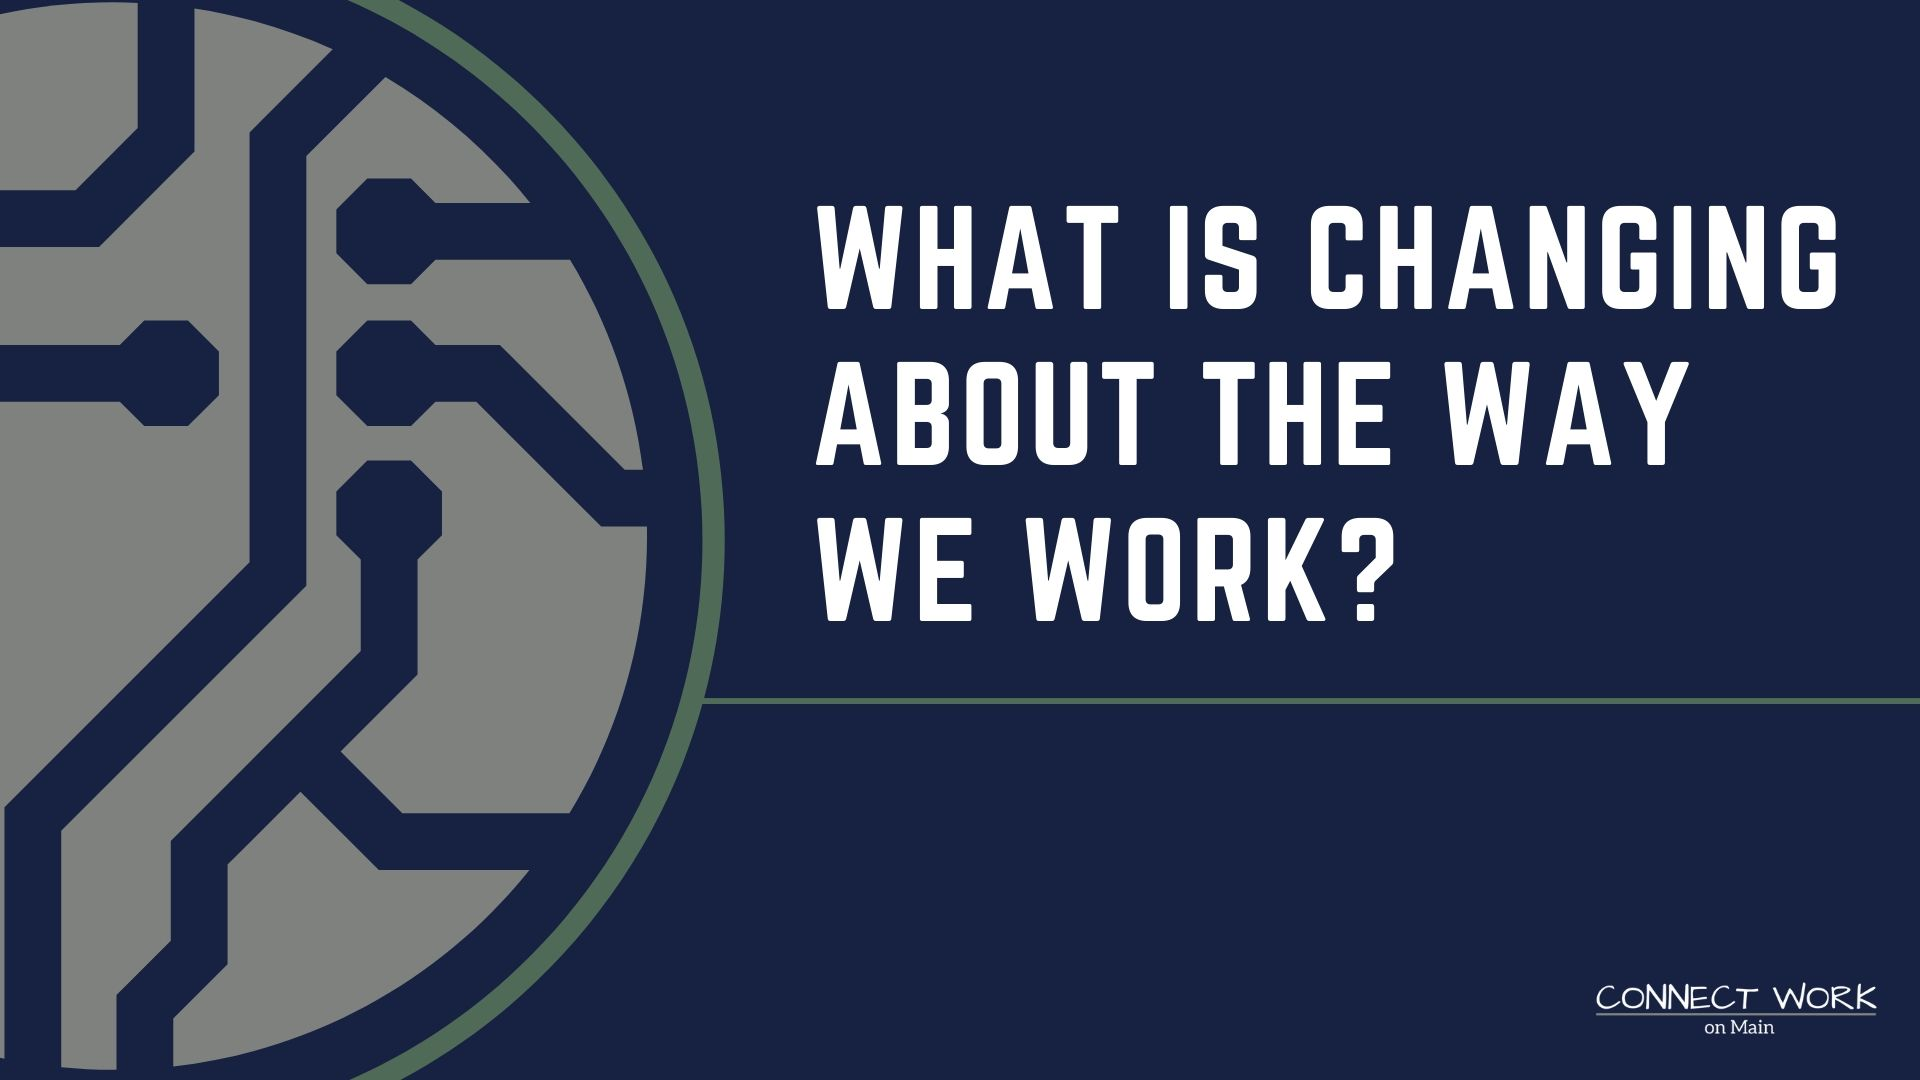 What is changing about the way we work?